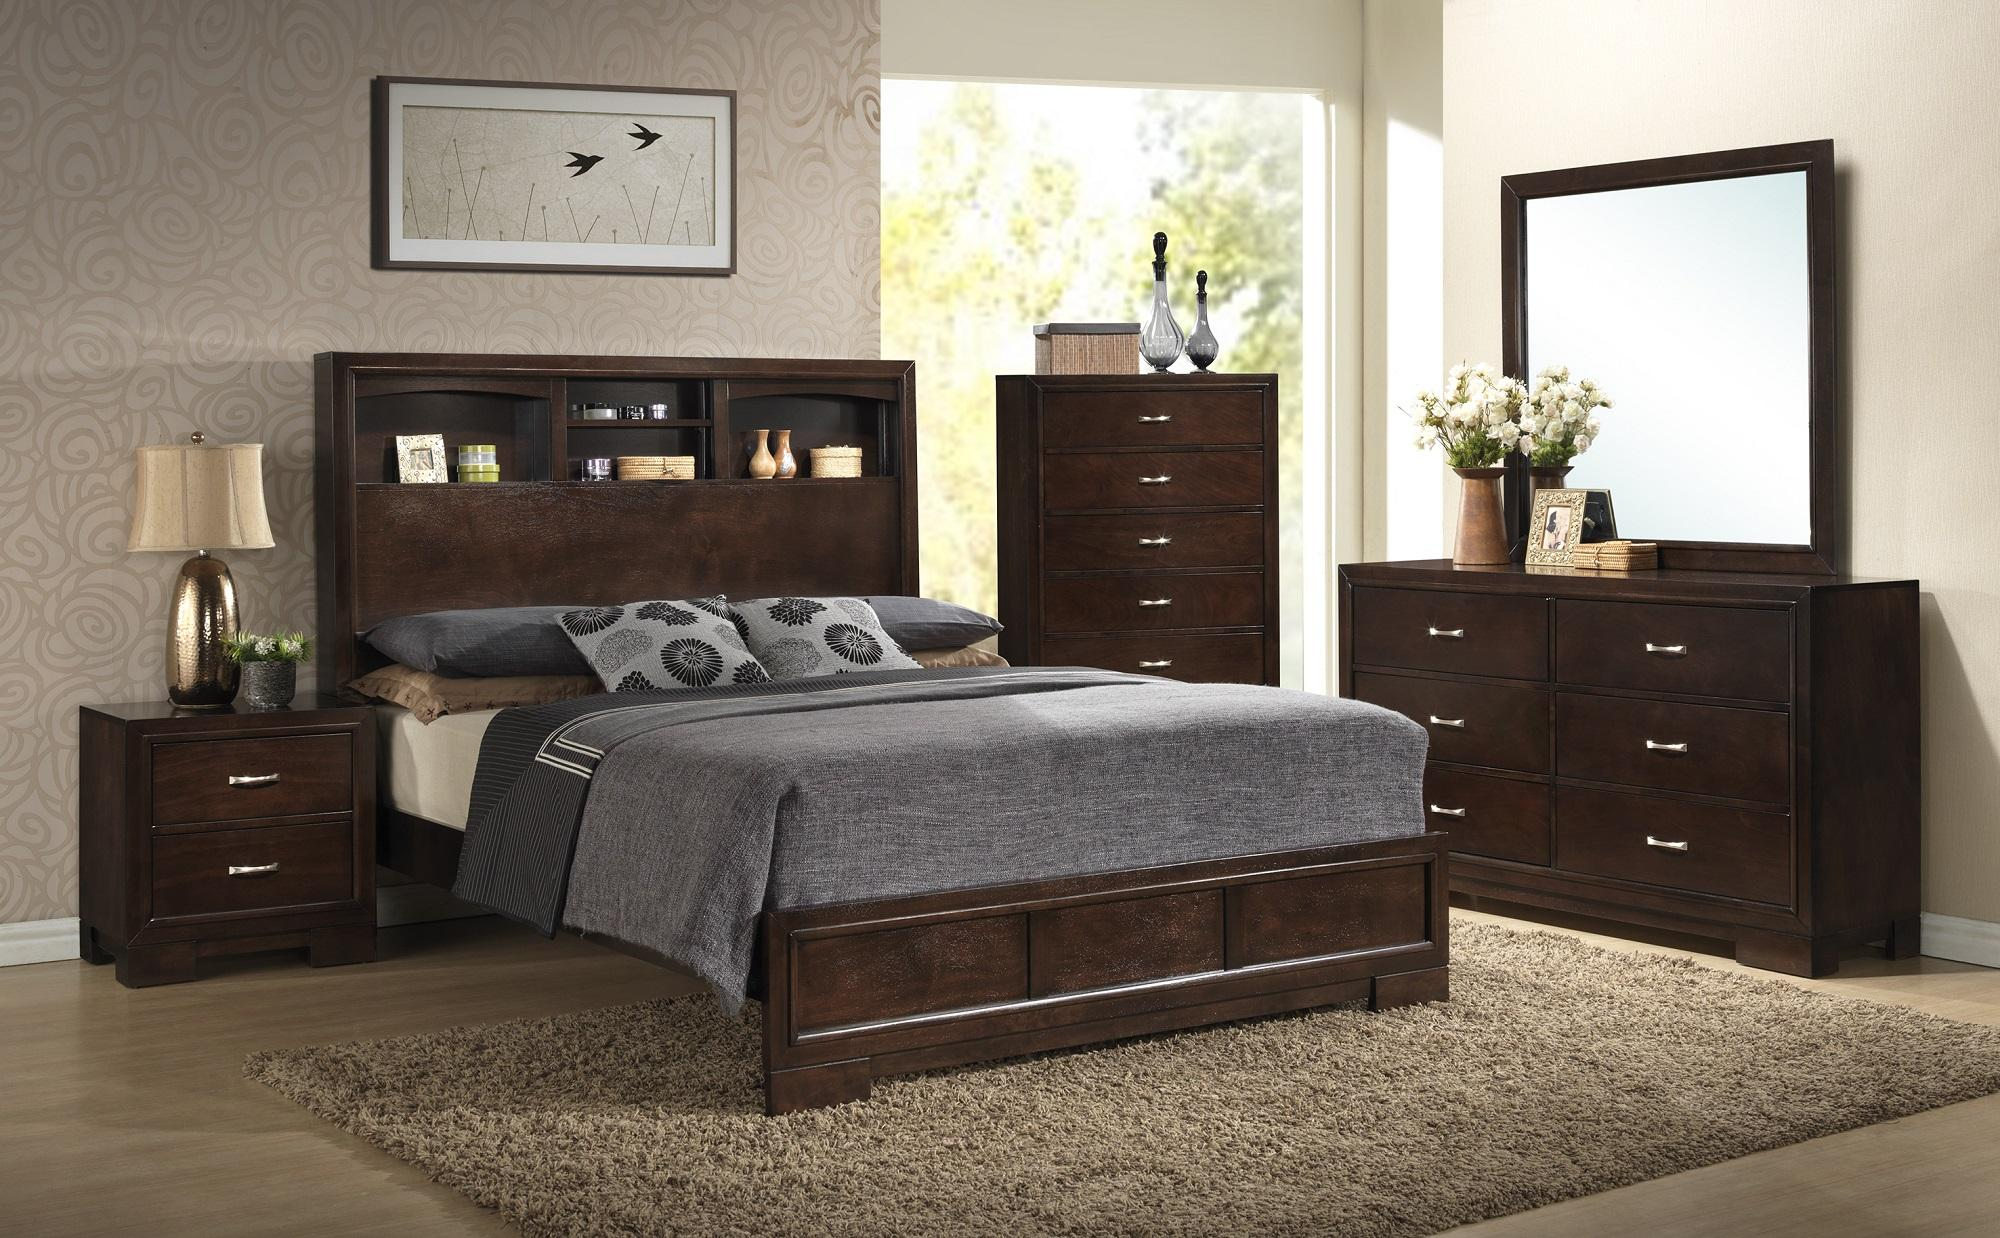 Monroe 3 Piece Queen Bedroom Set   Rotmans   Bedroom Groups Worcester   Boston  MA  Providence  RI  and New England. Monroe 3 Piece Queen Bedroom Set   Rotmans   Bedroom Groups